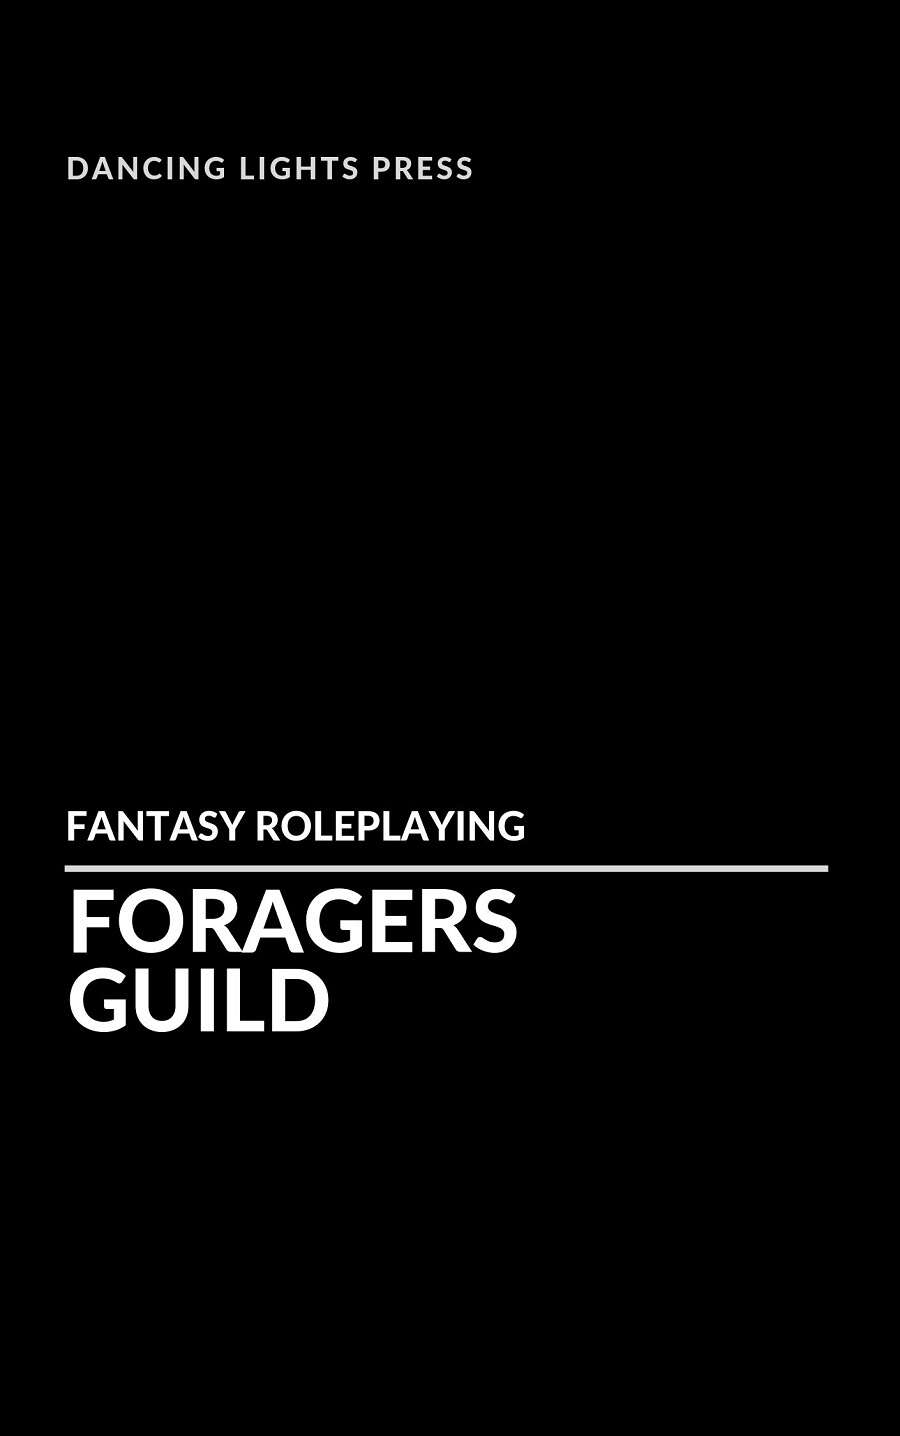 Foragers Guild Fantasy Roleplaying